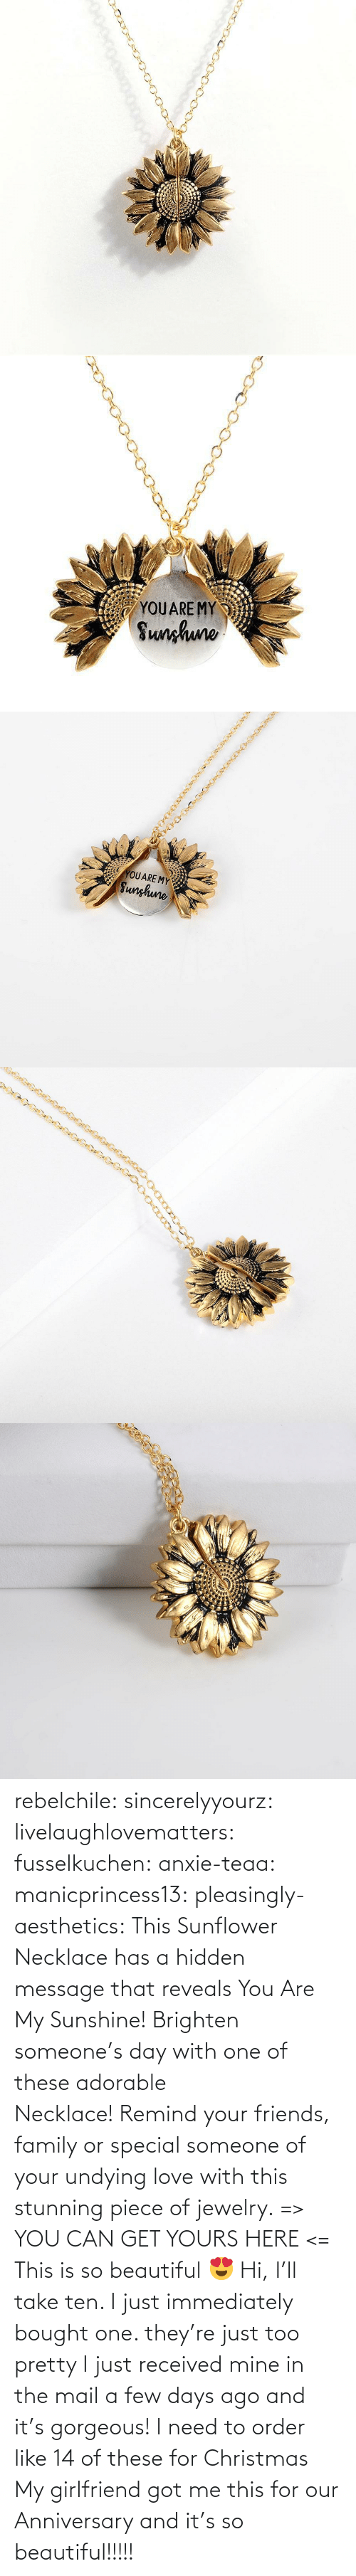 Beautiful, Christmas, and Family: rebelchile:  sincerelyyourz:  livelaughlovematters:  fusselkuchen:  anxie-teaa:   manicprincess13:   pleasingly-aesthetics:  This Sunflower Necklace has a hidden message that reveals You Are My Sunshine! Brighten someone's day with one of these adorable Necklace!Remind your friends, family or special someone of your undying love with this stunning piece of jewelry. => YOU CAN GET YOURS HERE <=   This is so beautiful 😍    Hi, I'll take ten.    I just immediately bought one. they're just too pretty   I just received mine in the mail a few days ago and it's gorgeous!   I need to order like 14 of these for Christmas    My girlfriend got me this for our Anniversary and it's so beautiful!!!!!